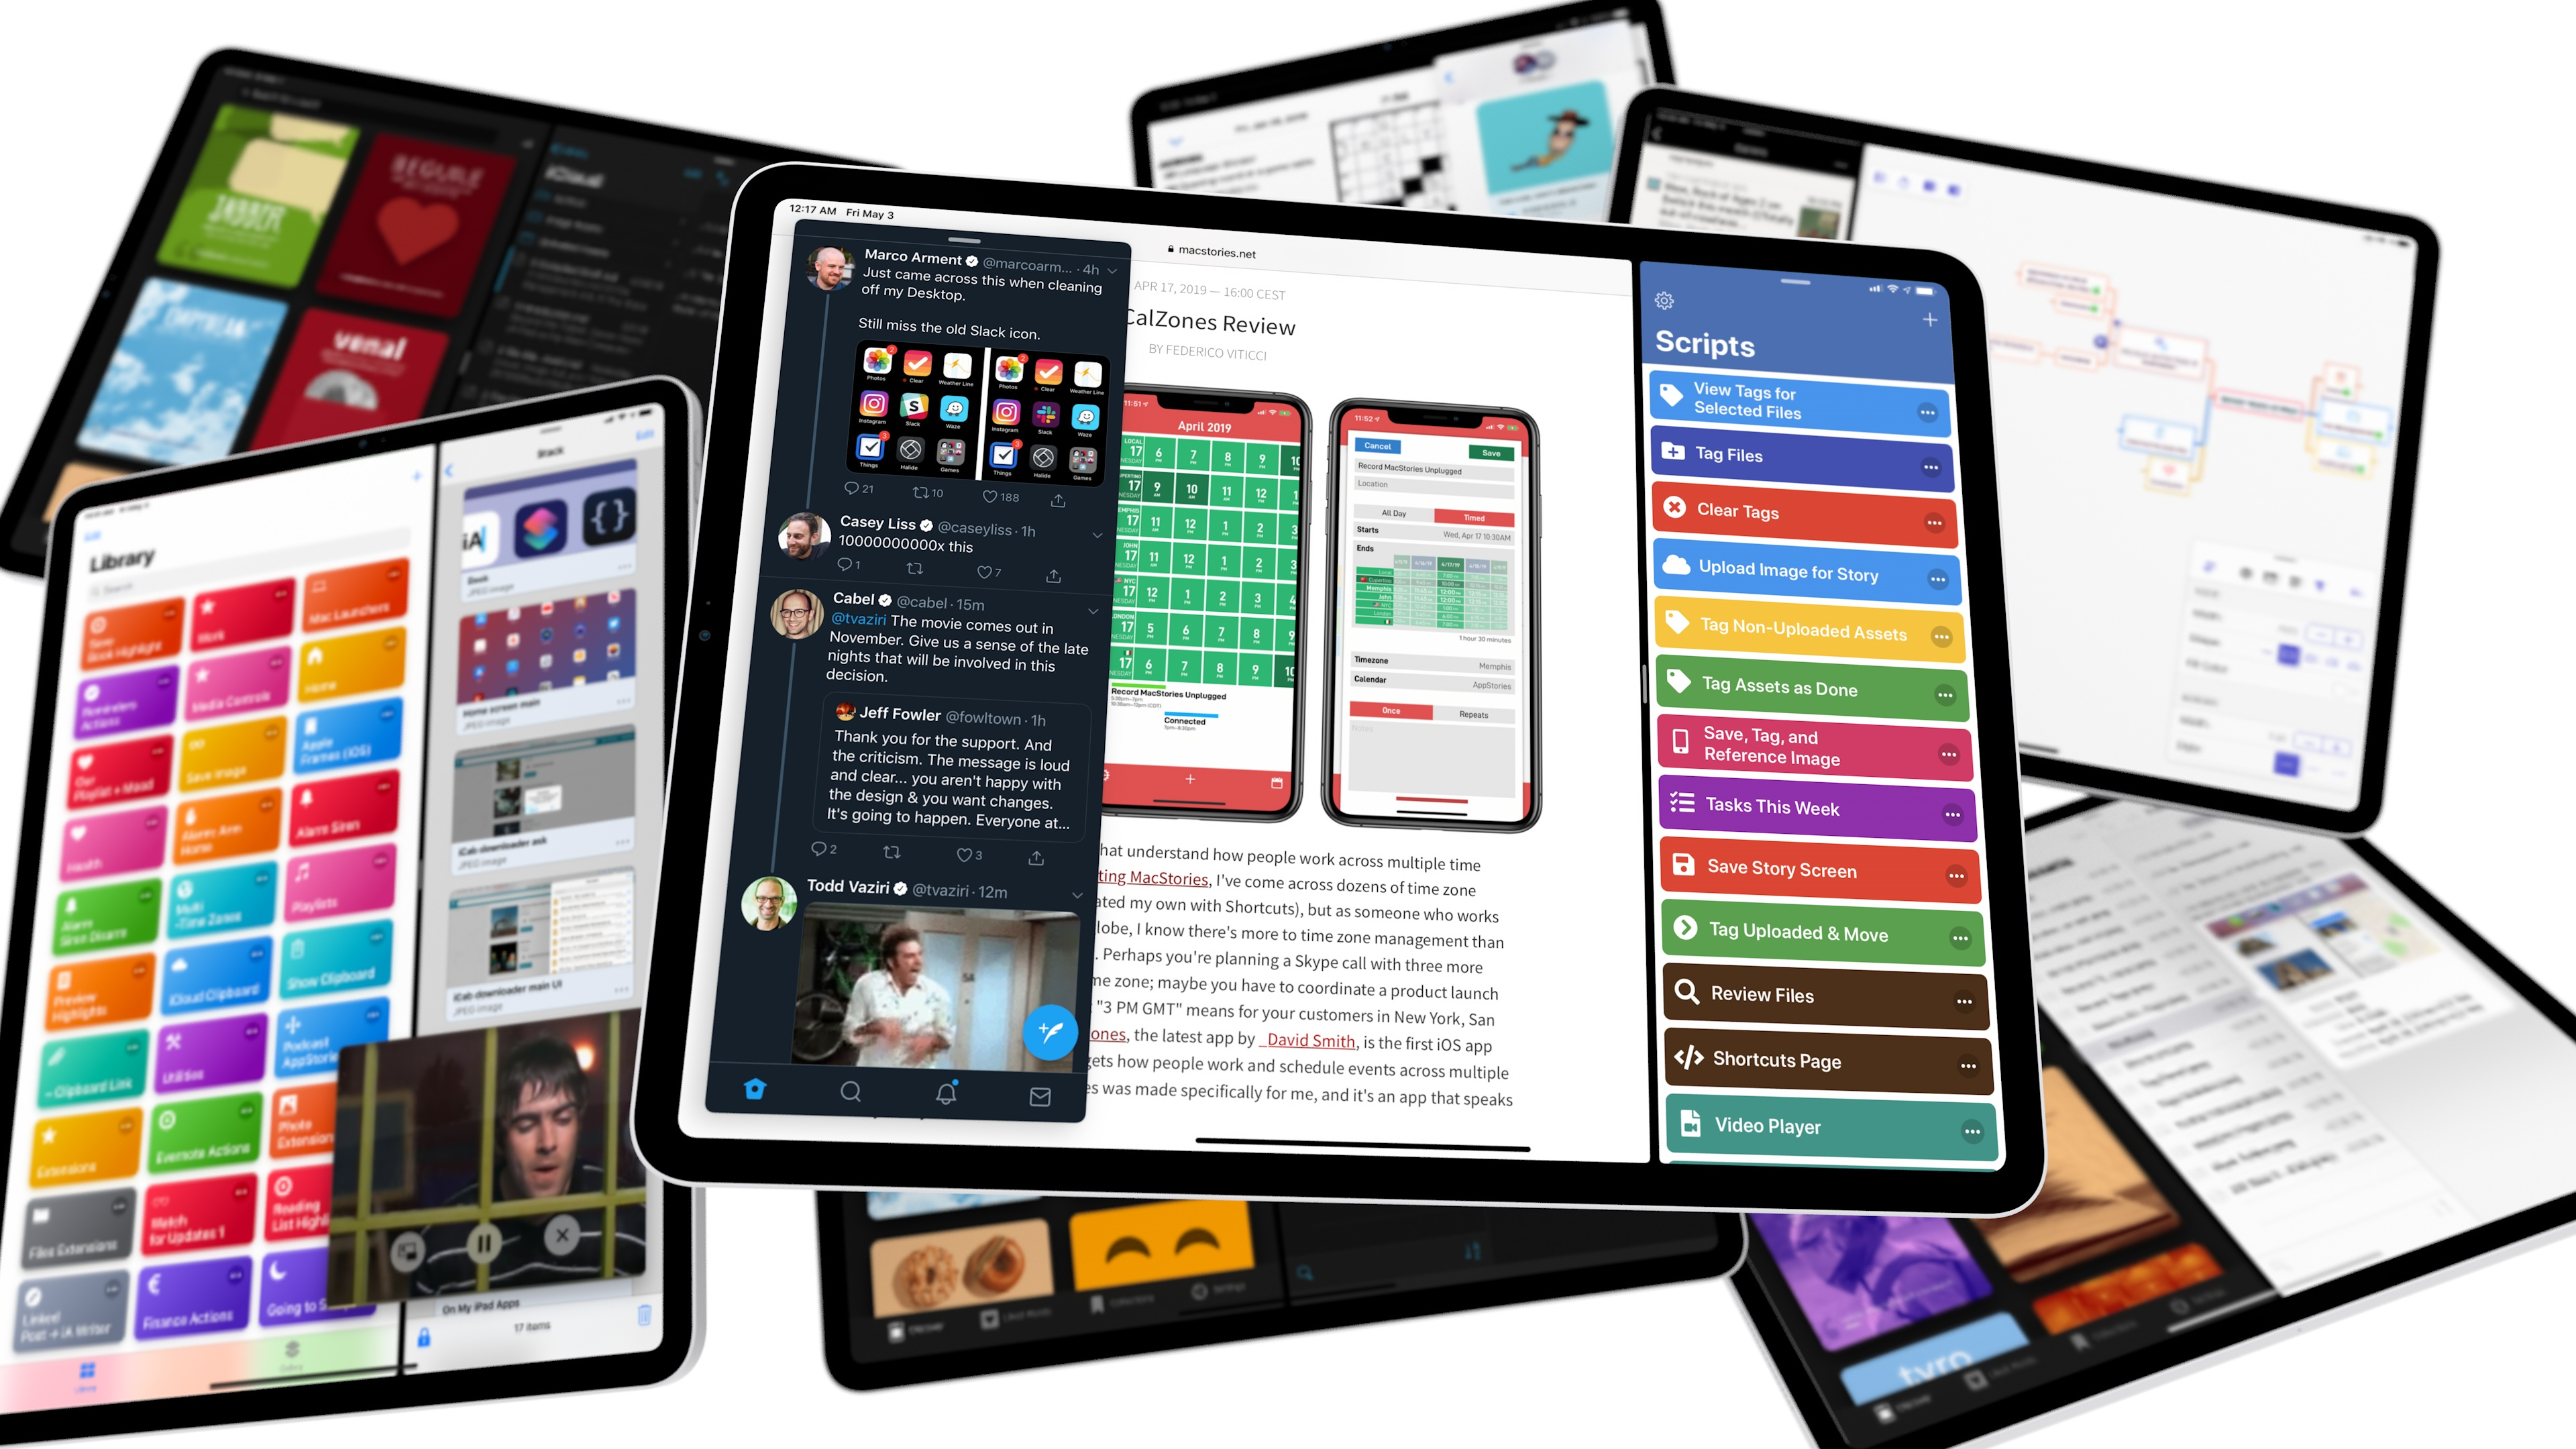 MacStories' iPad Articles - MacStories